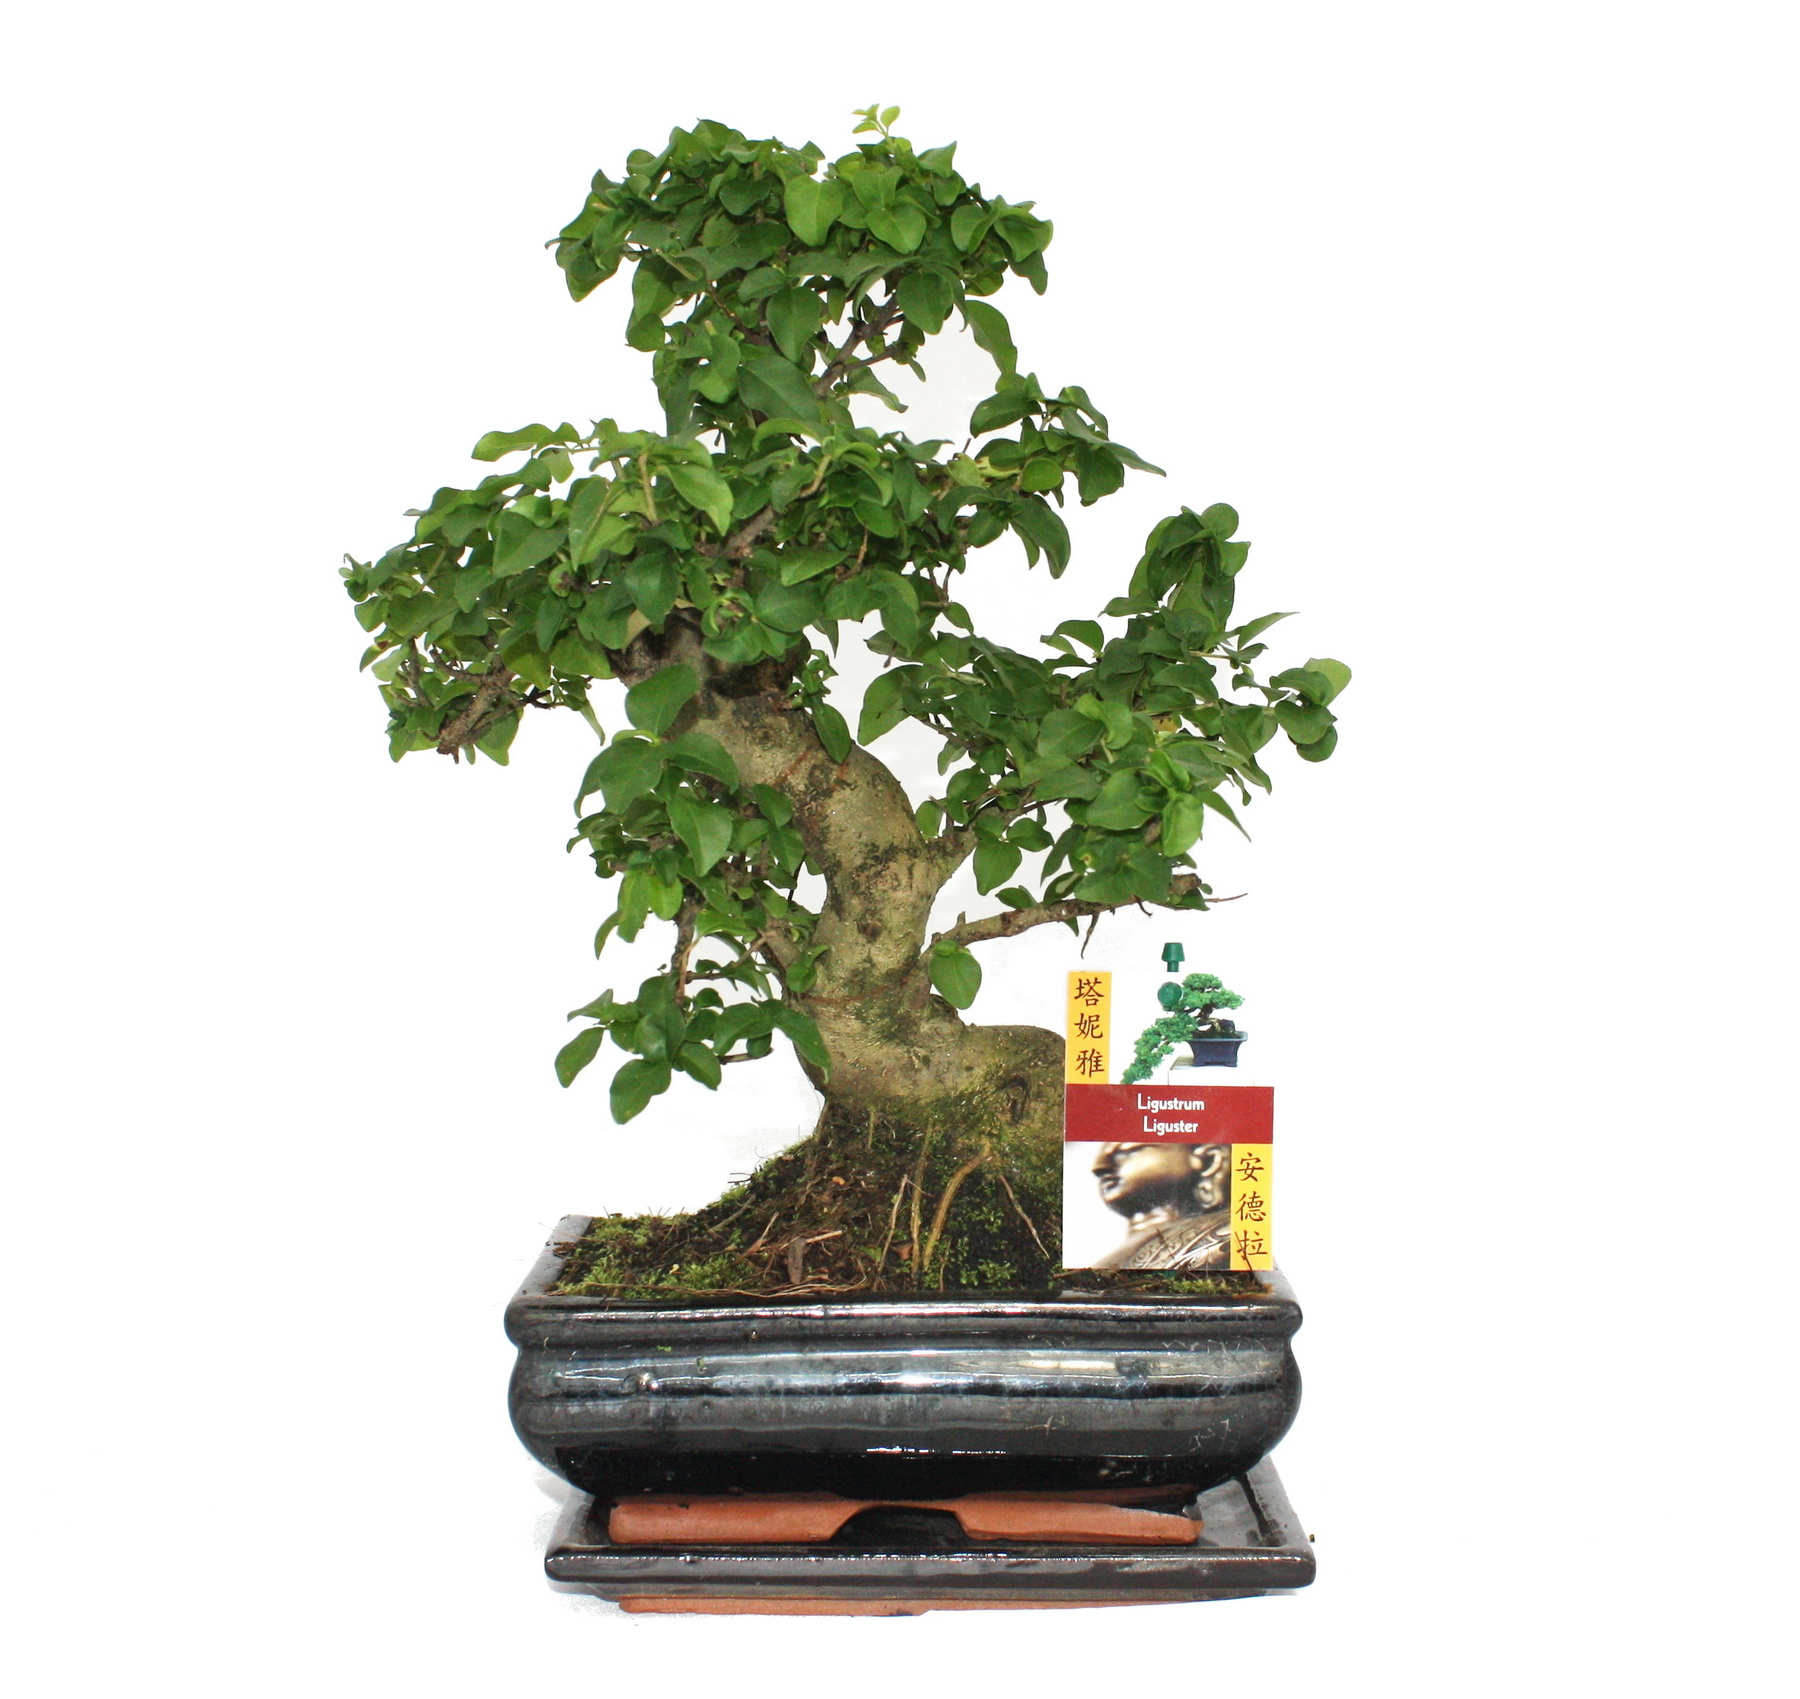 bonsai chinesischer liguster ca 8 jahre ebay. Black Bedroom Furniture Sets. Home Design Ideas